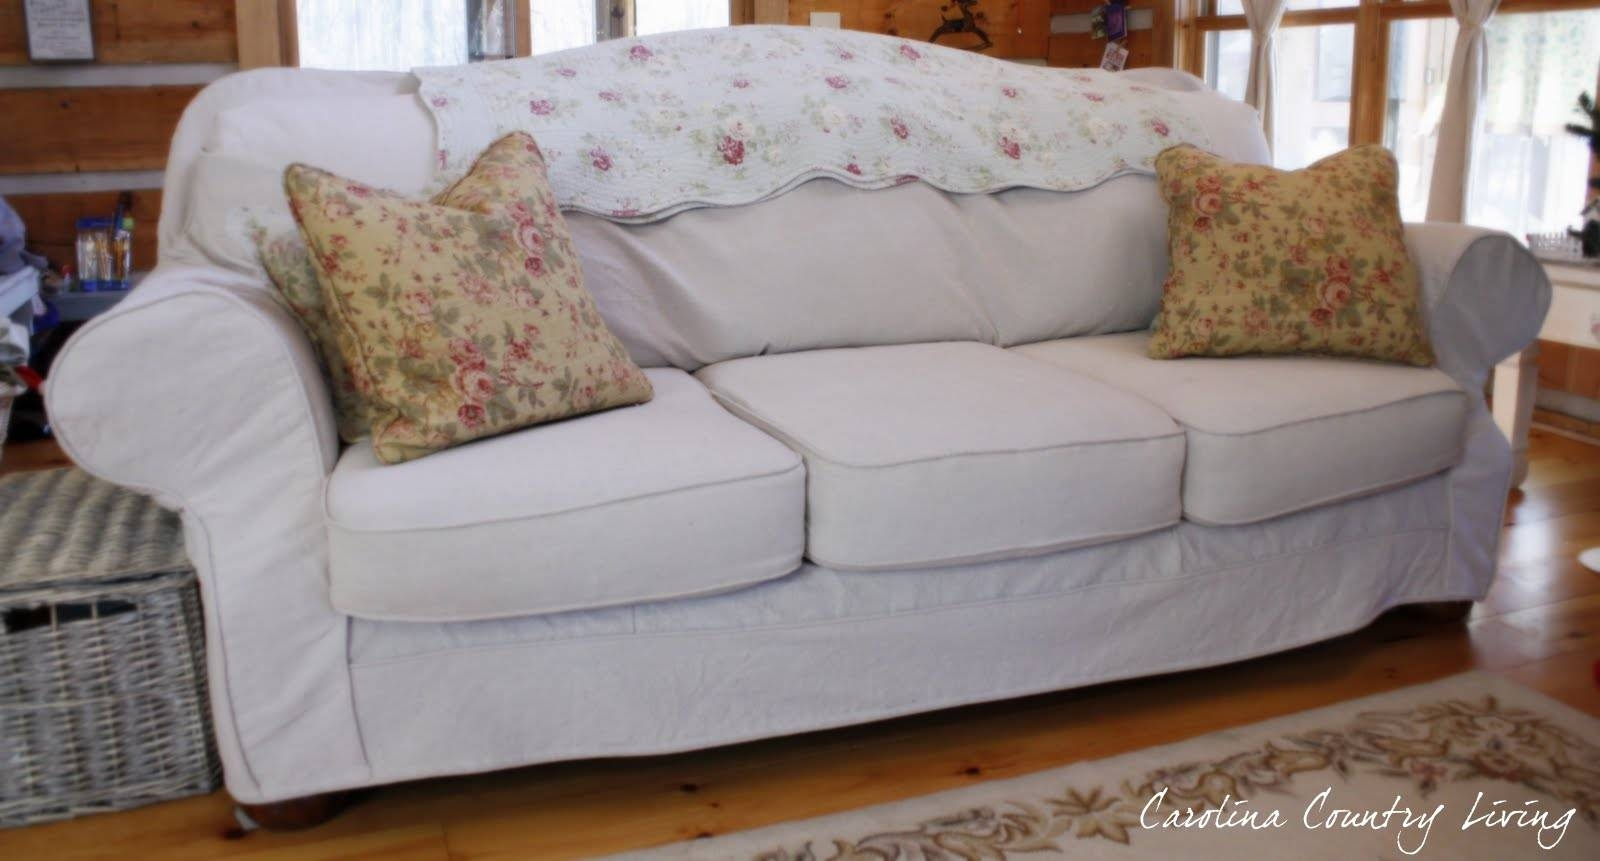 Carolina Country Living: Drop Cloth Sofa Slipcover in Camelback Slipcovers (Image 2 of 15)